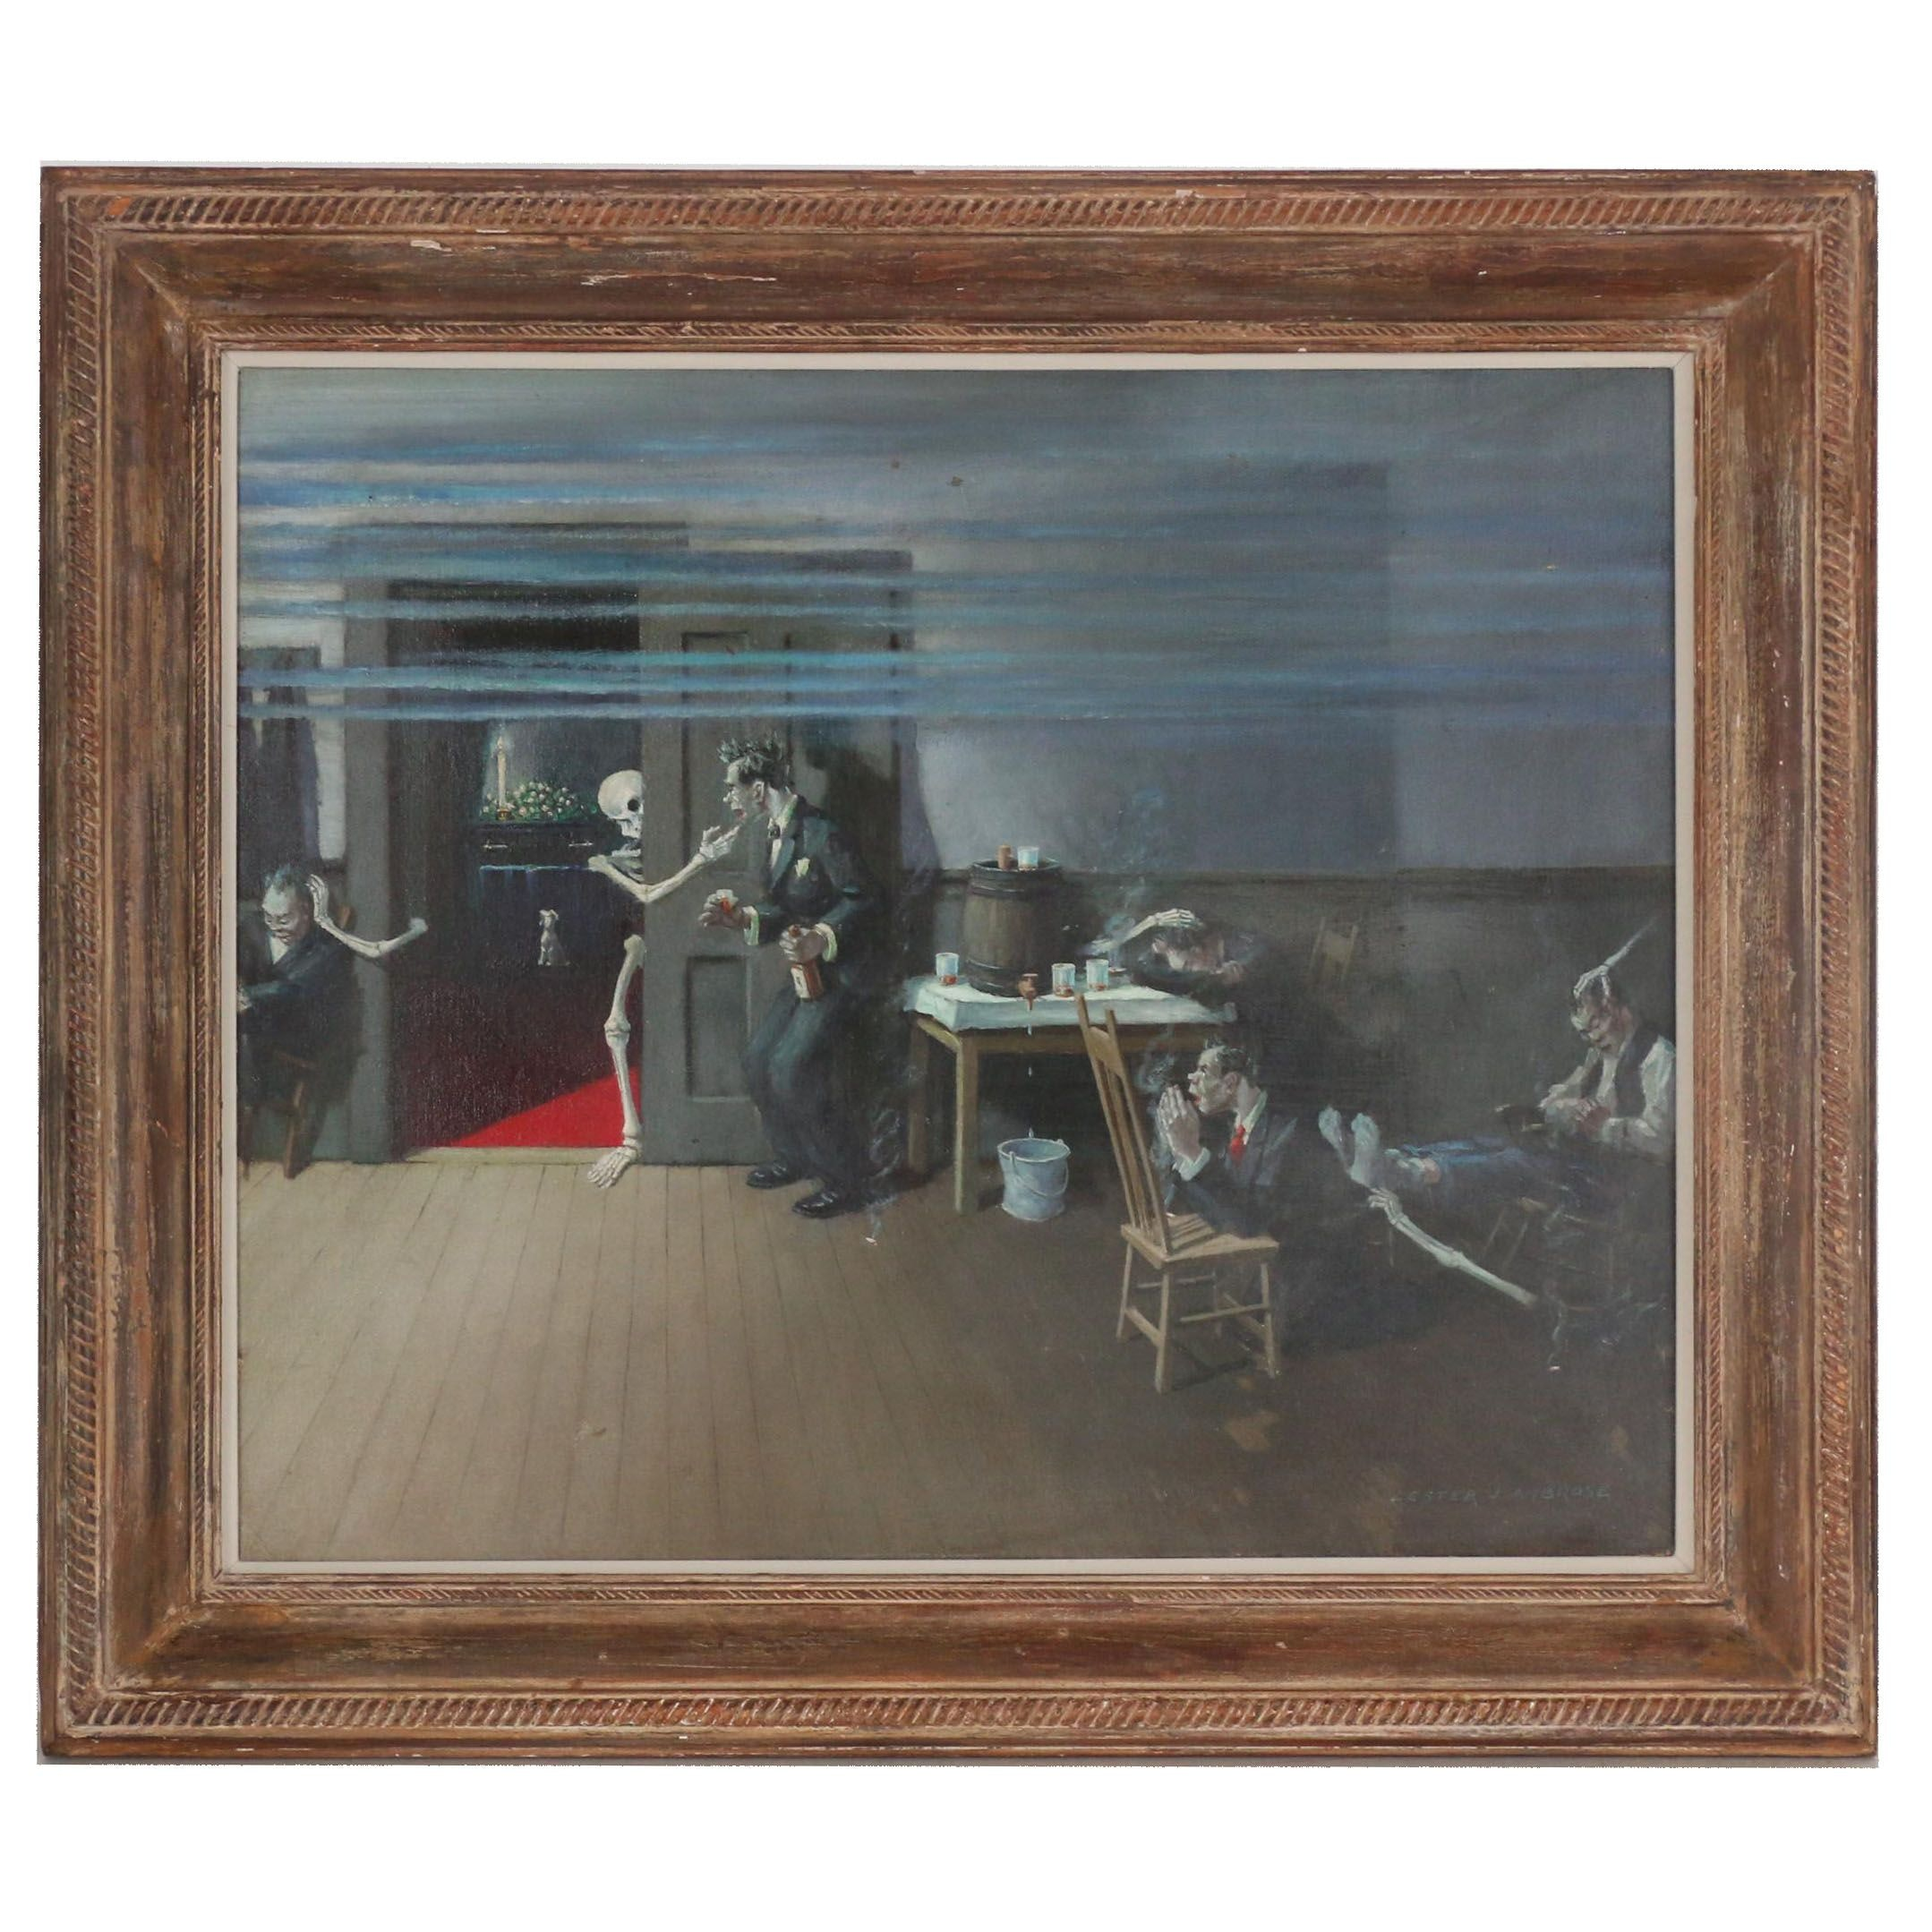 Lester J. Ambrose Oil Painting of Surrealist Interior Scene of Funeral Home